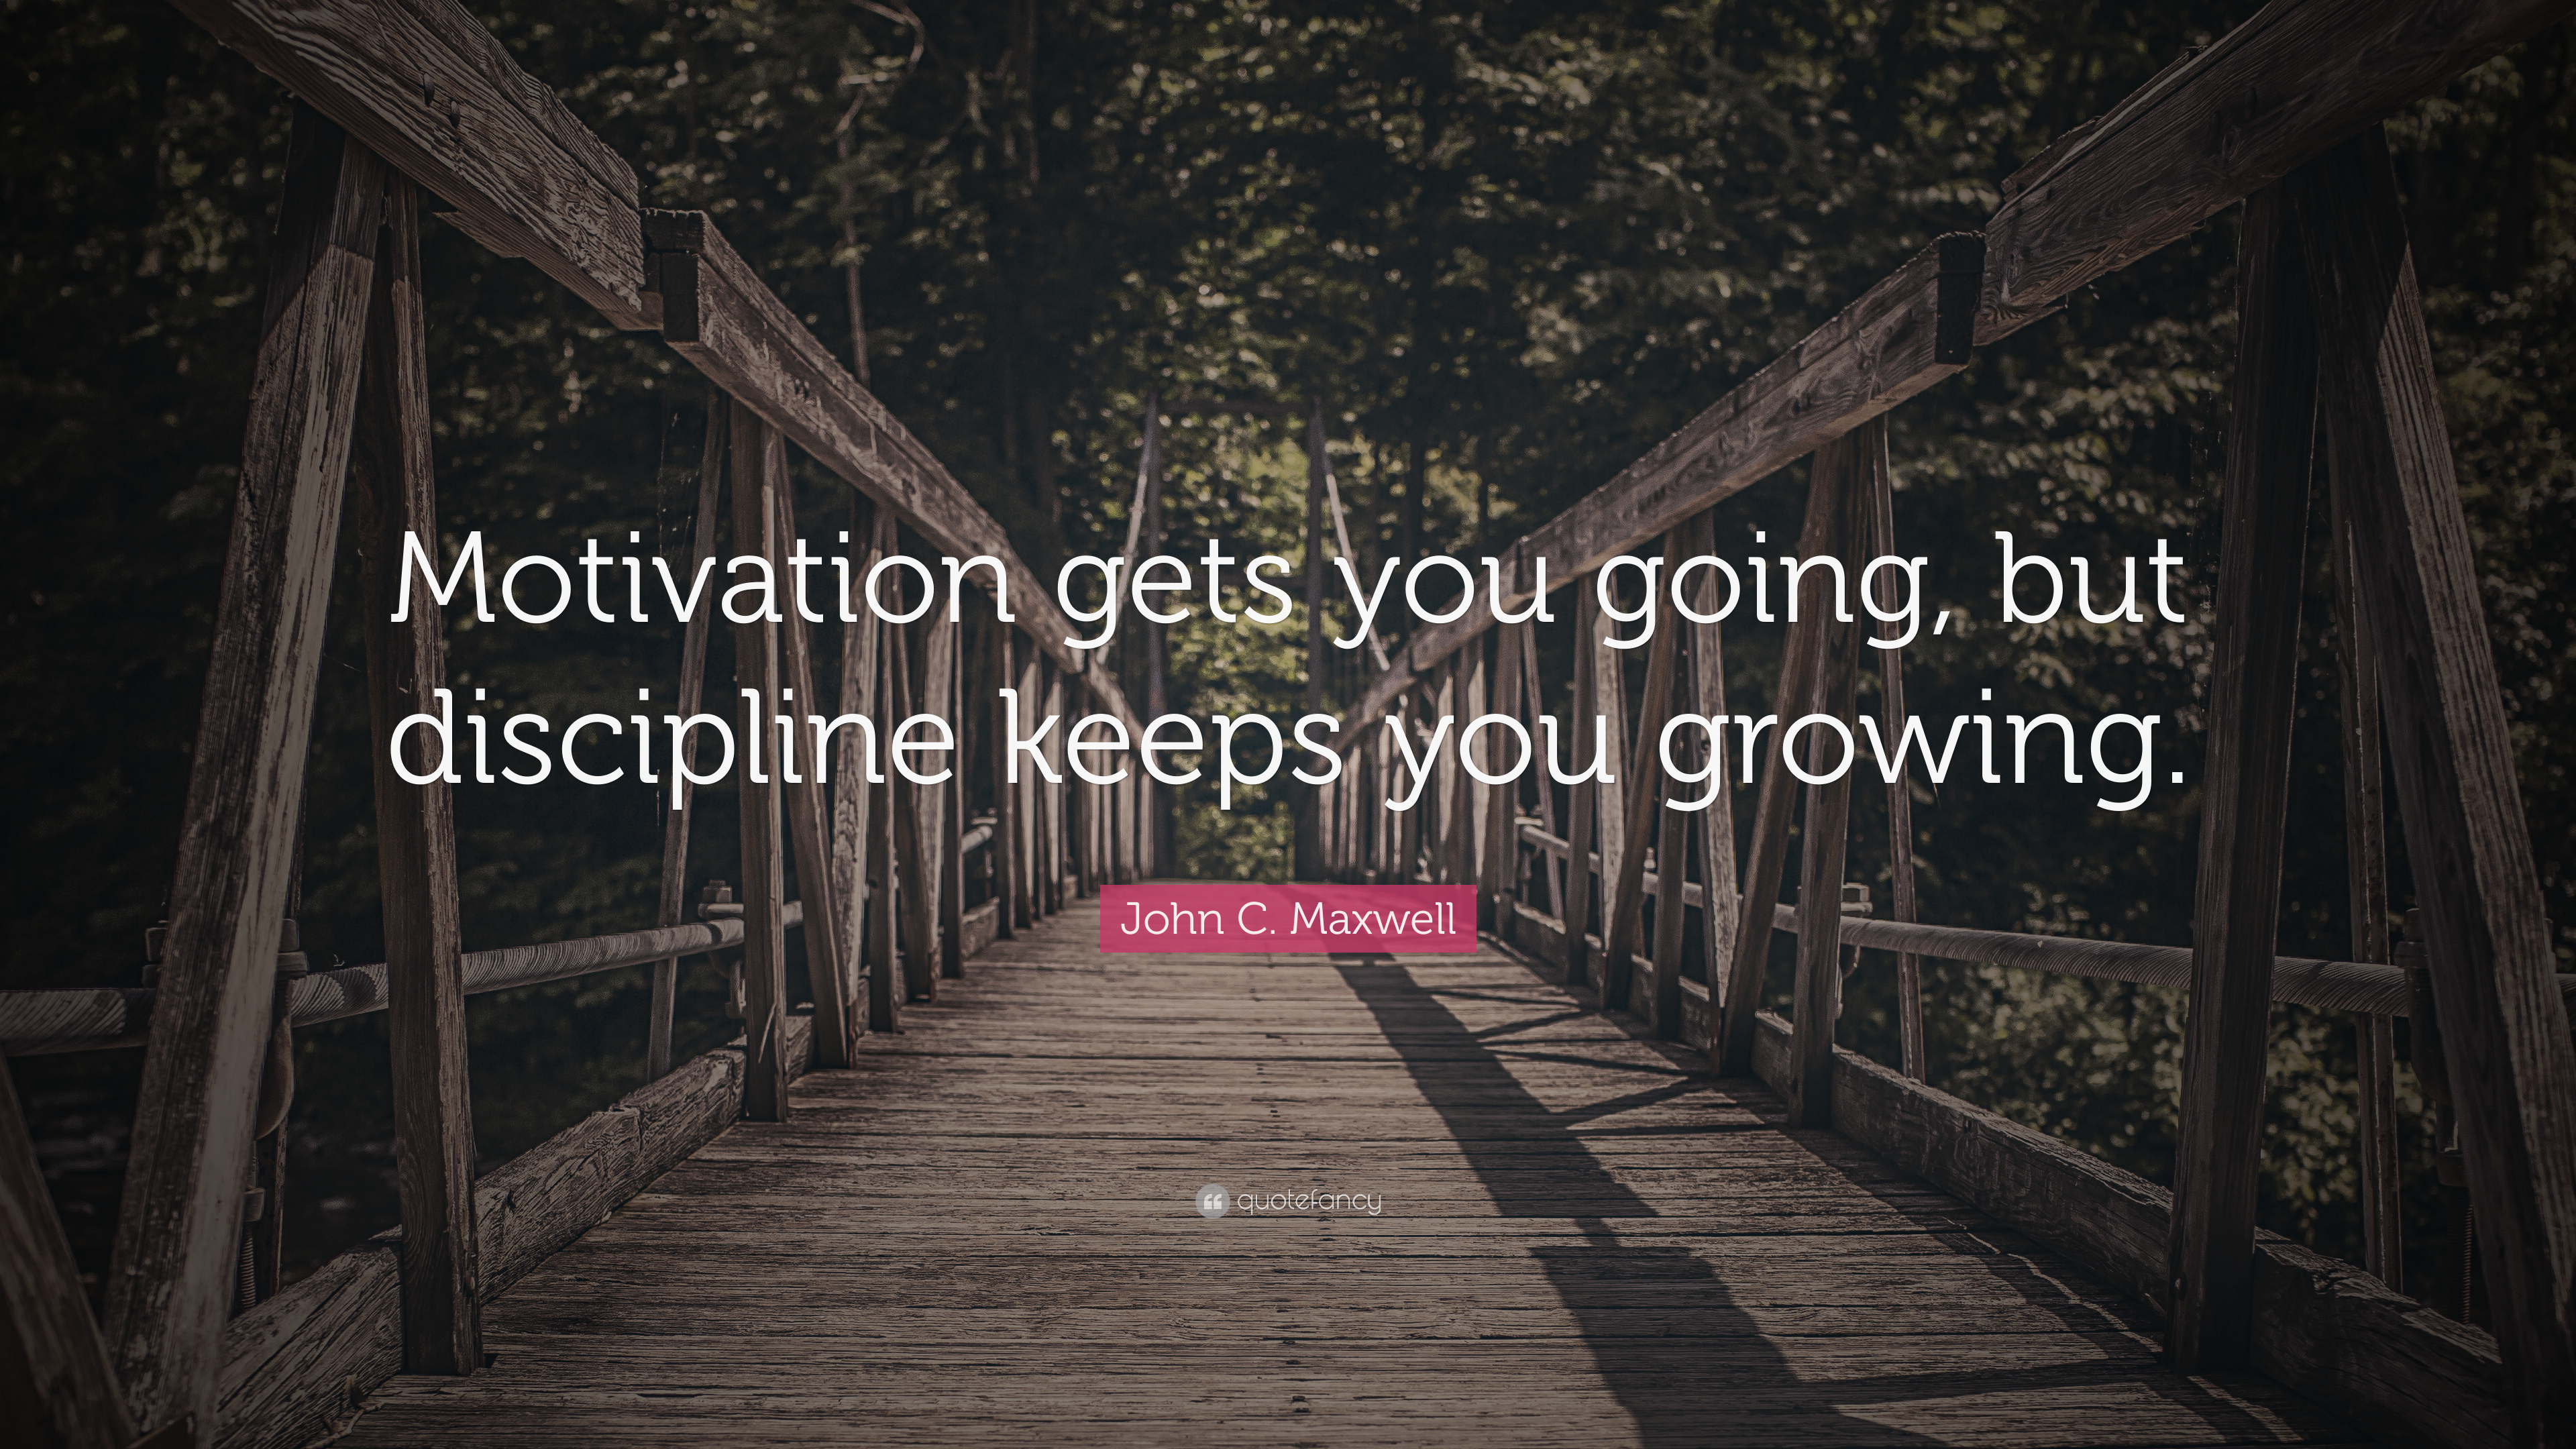 Motivating Quote Wallpaper John C Maxwell Quote Motivation Gets You Going But